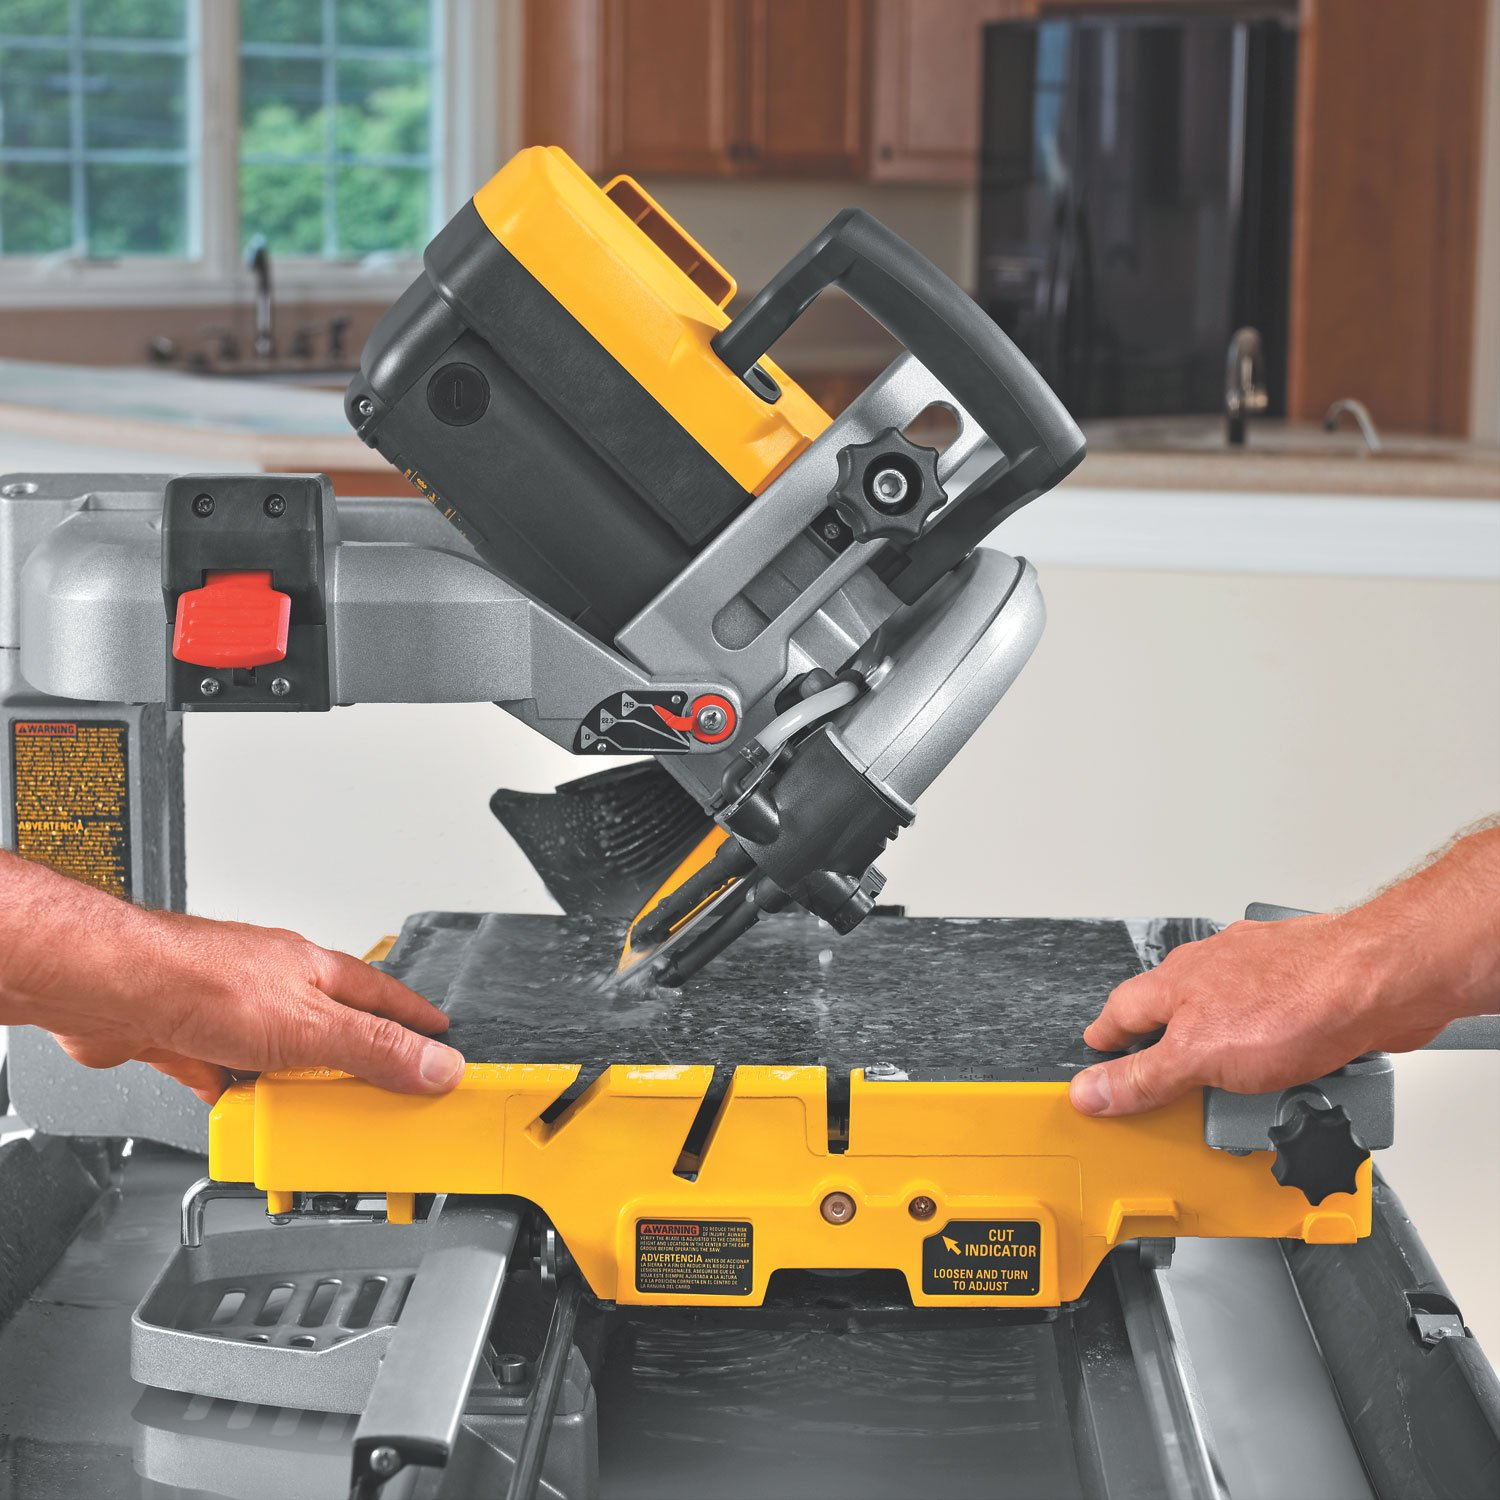 DEWALT DS HeavyDuty Inch Wet Tile Saw With Stand Power - Dewalt wet saw pump